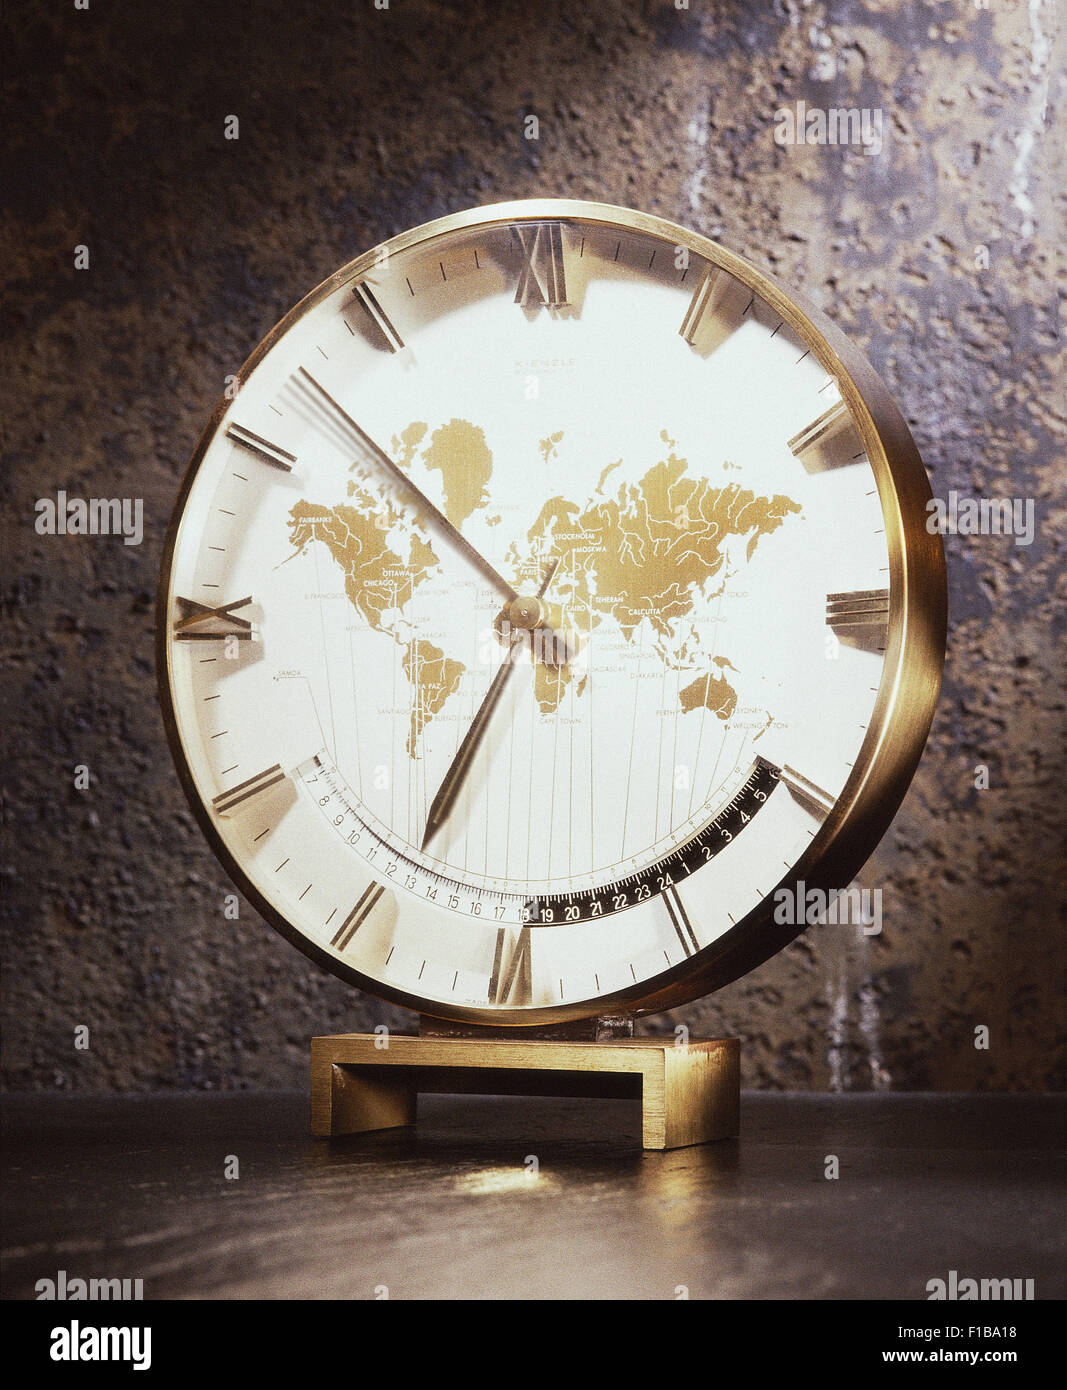 Hamburg germany europe map stock photos hamburg germany europe map hamburg germany grandfather clock with world map on the dial stock image gumiabroncs Gallery